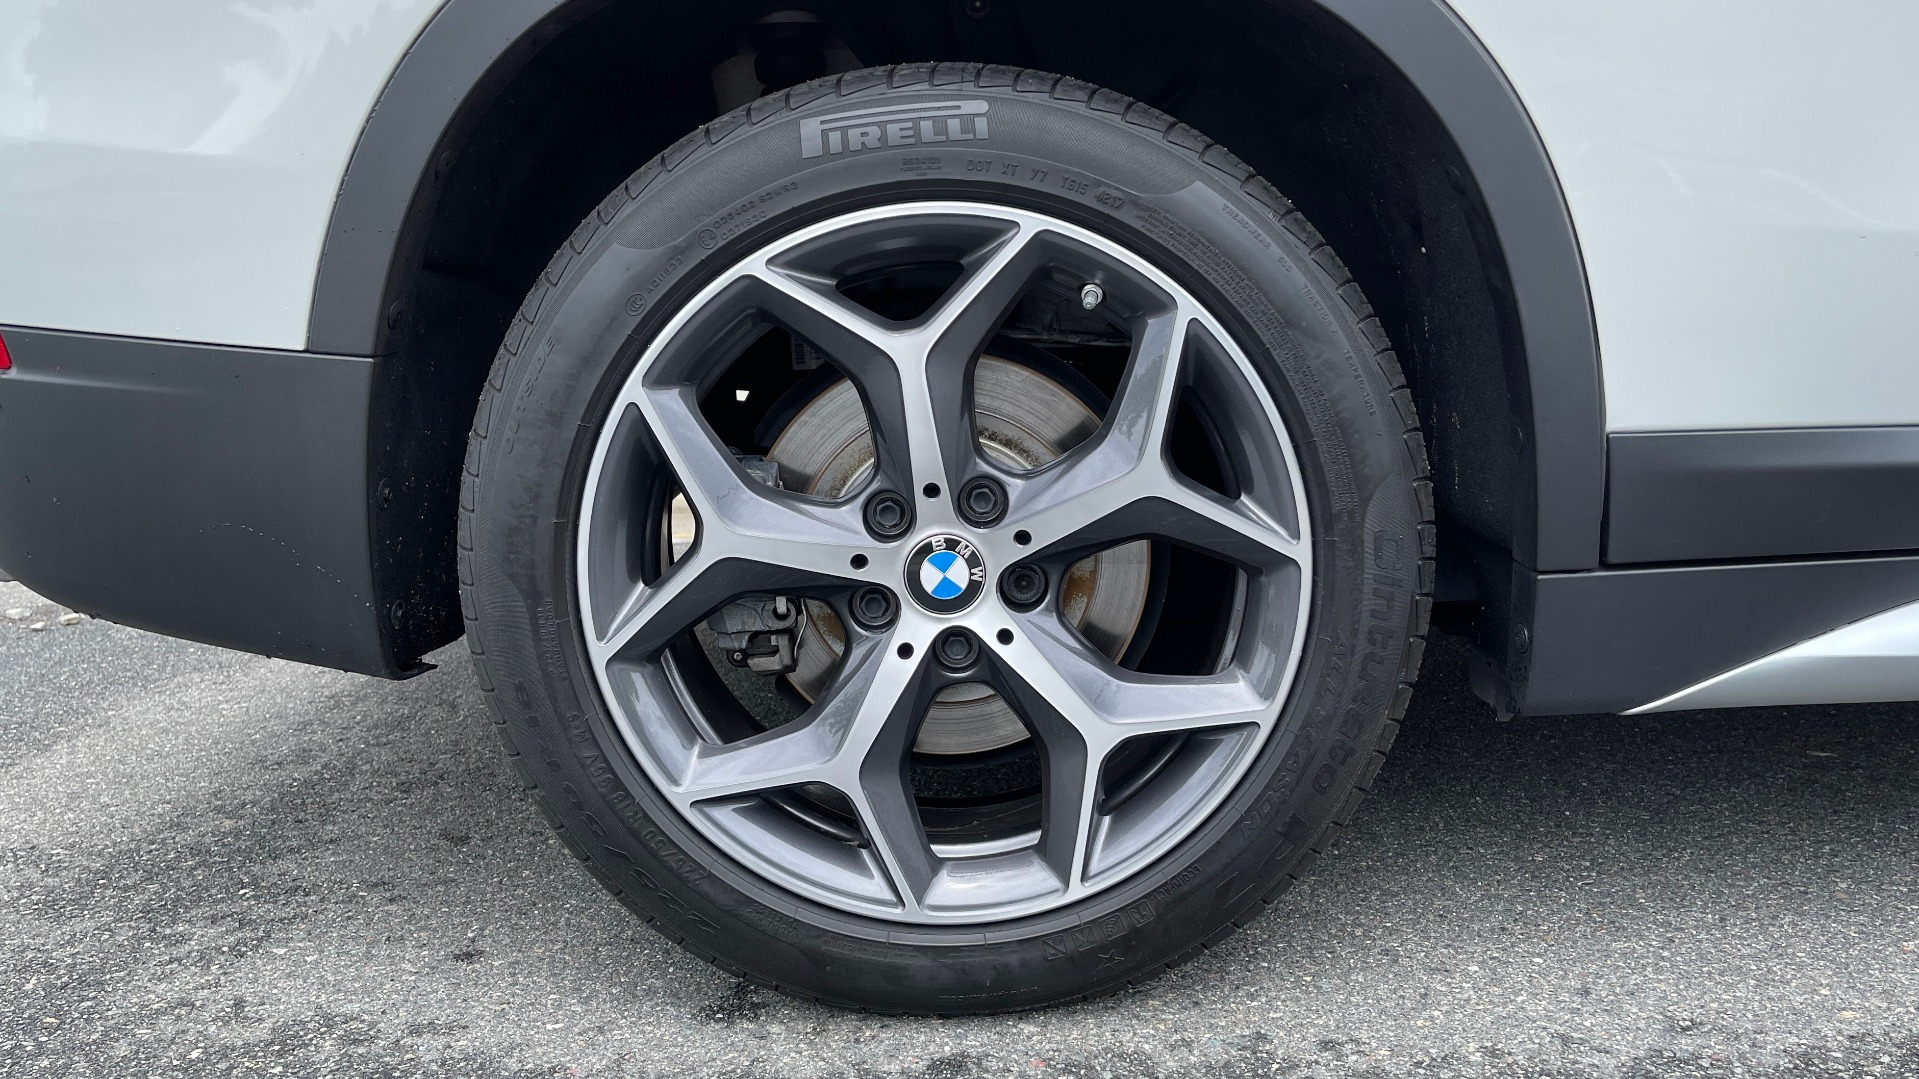 Used 2018 BMW X1 XDRIVE28I / CONV PKG / PANO-ROOF / HTD STS / PARK ASST / REARVIEW for sale $30,995 at Formula Imports in Charlotte NC 28227 88